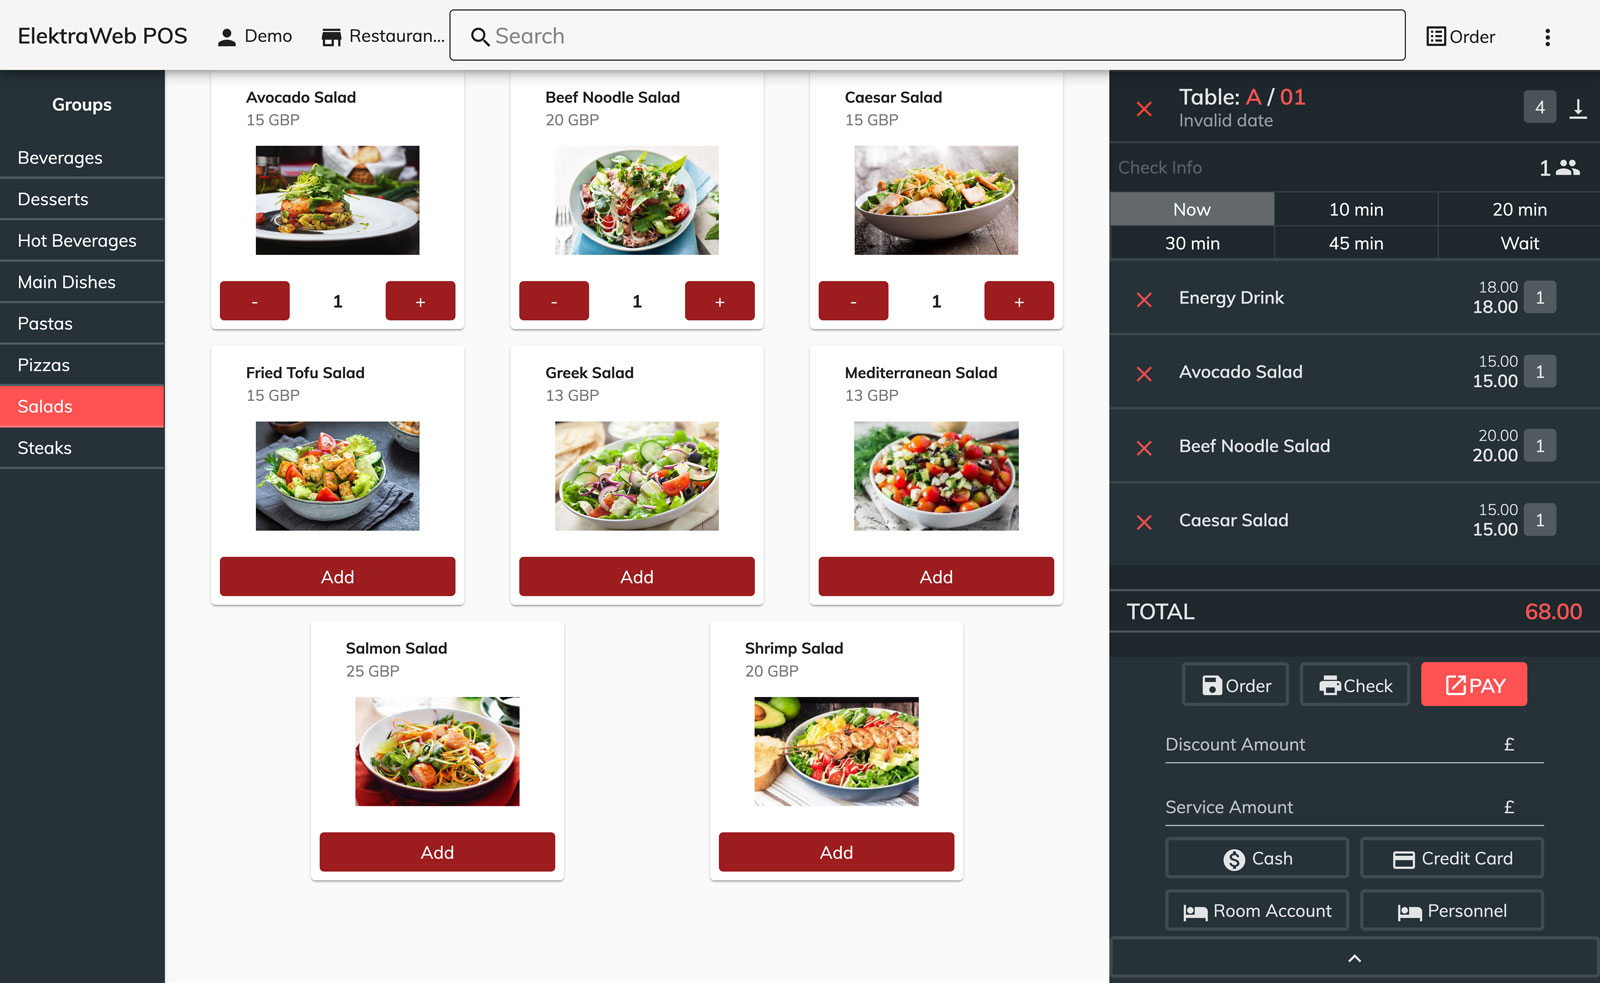 Web Based Pos Software- Hotel Management System and Hotel Program Restaurant Management Demo Screen